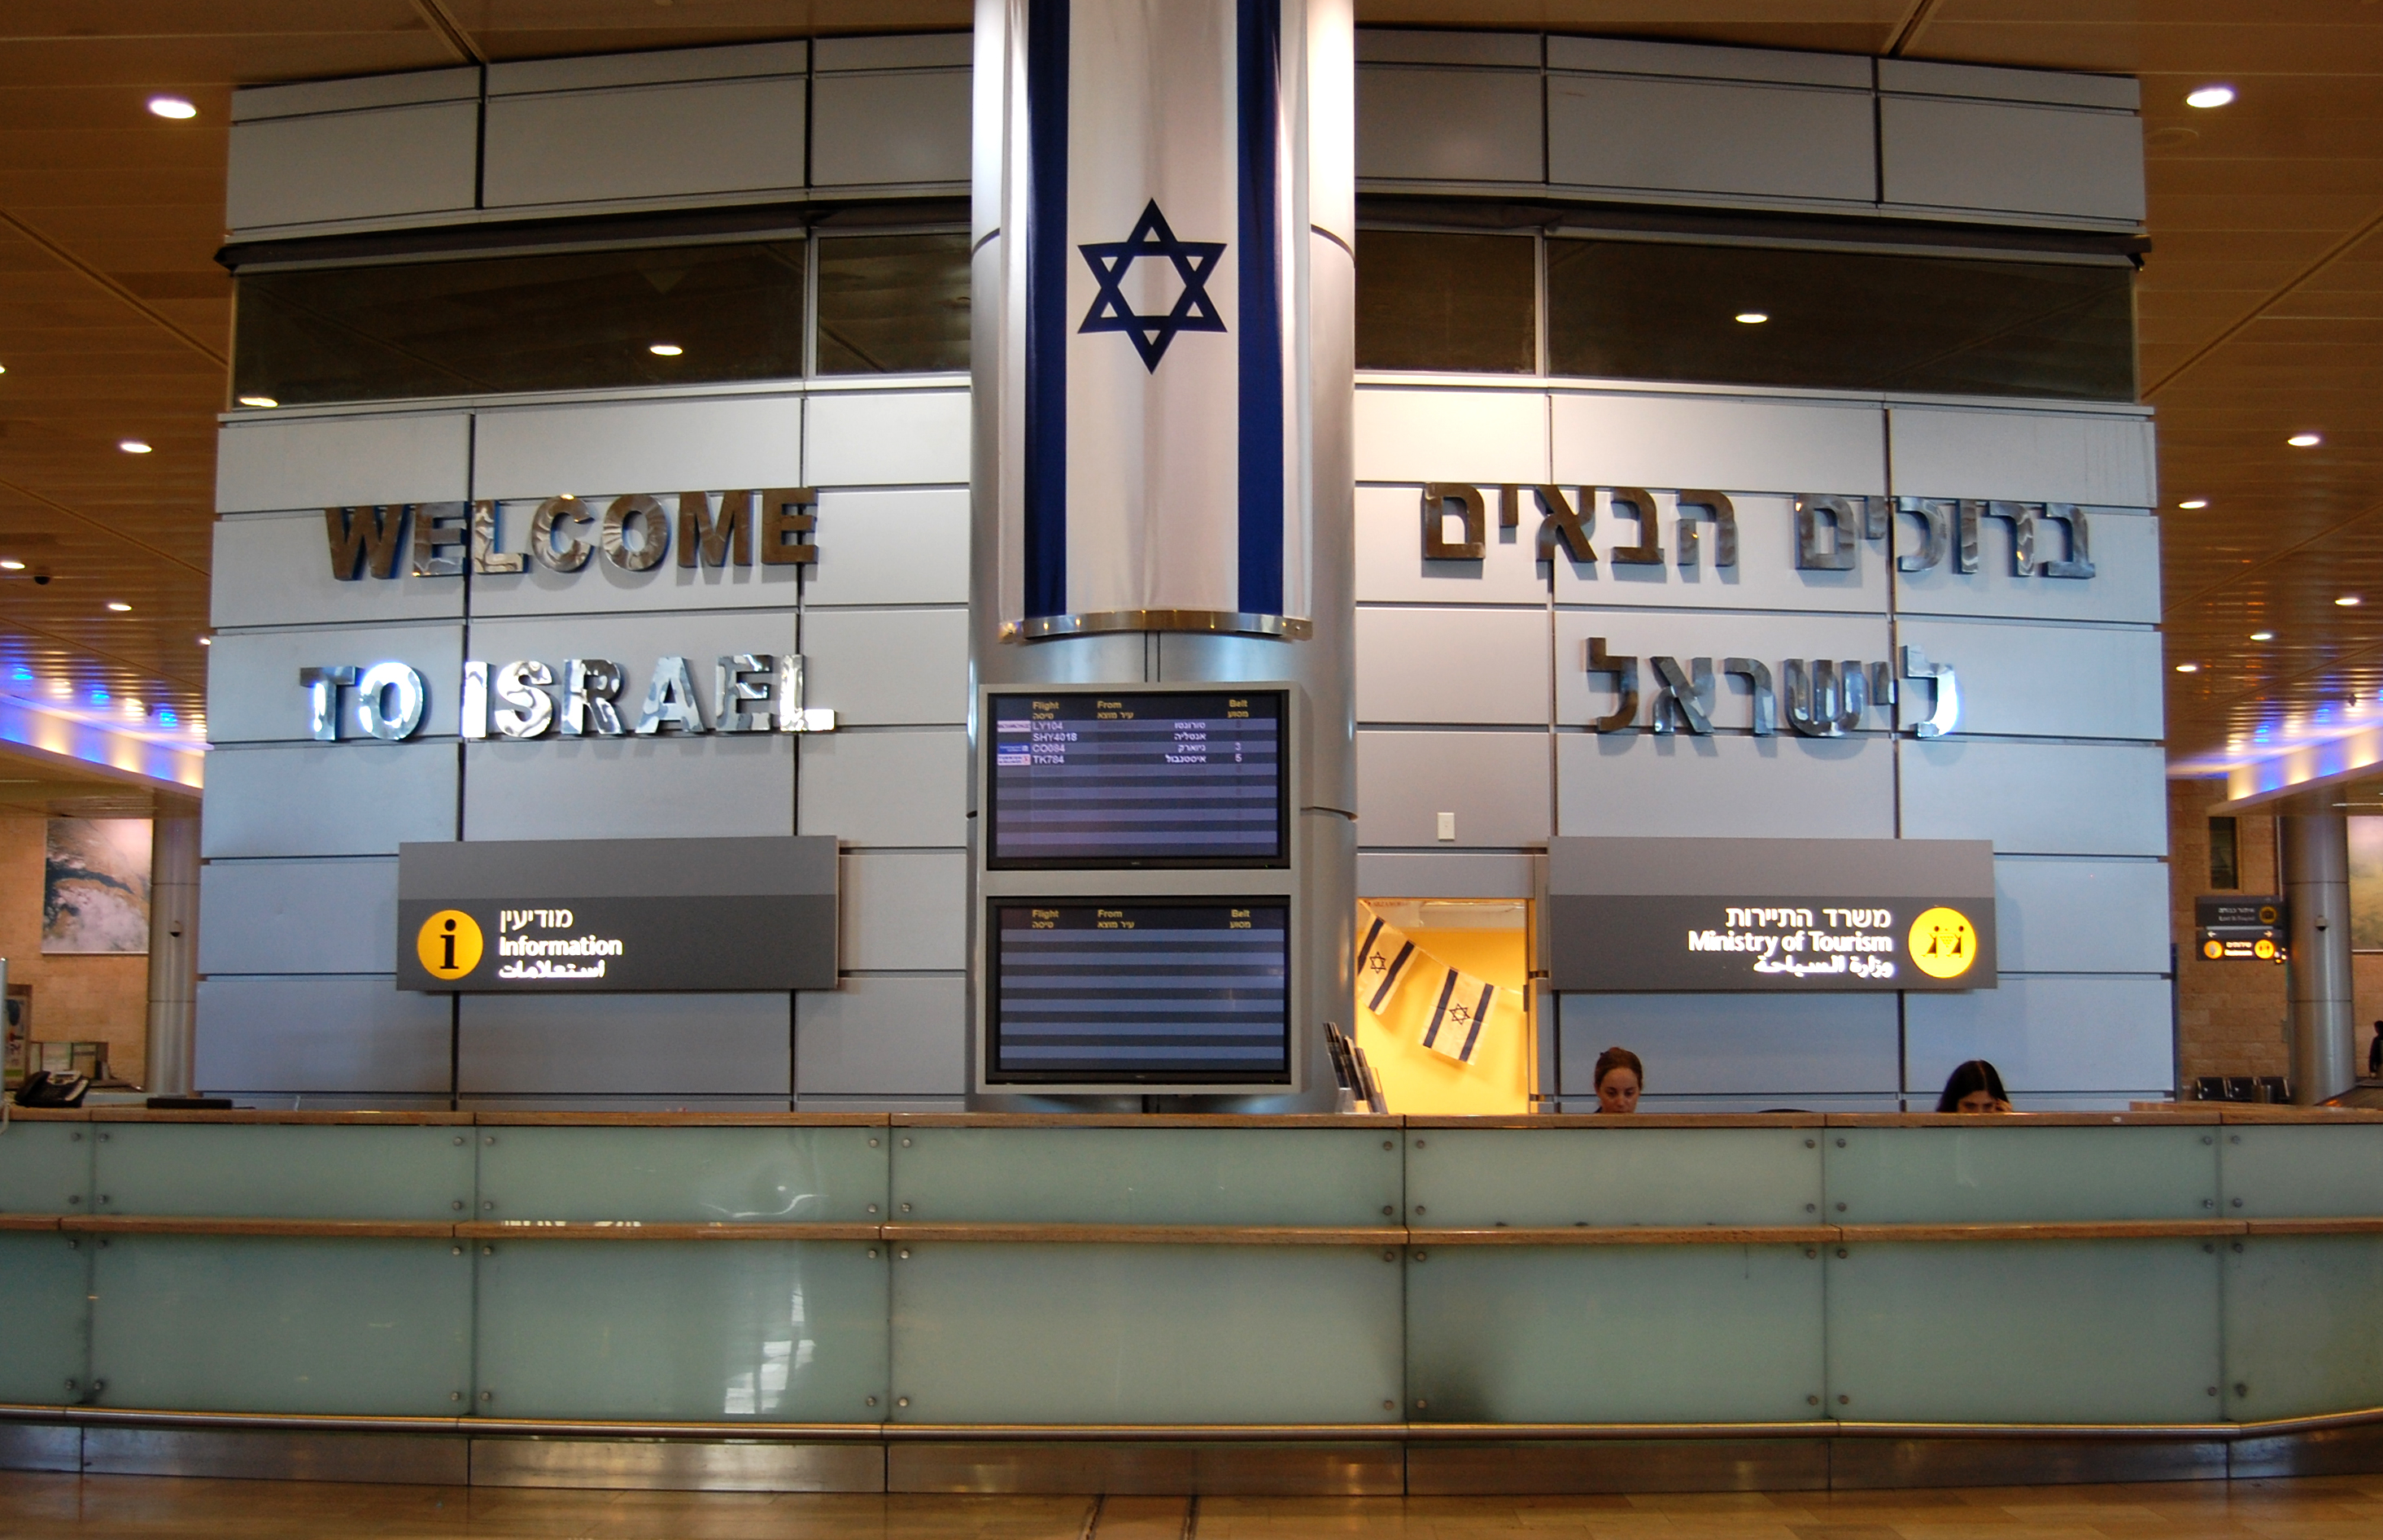 What Are The Best Airline Miles Points To Fly To Israel